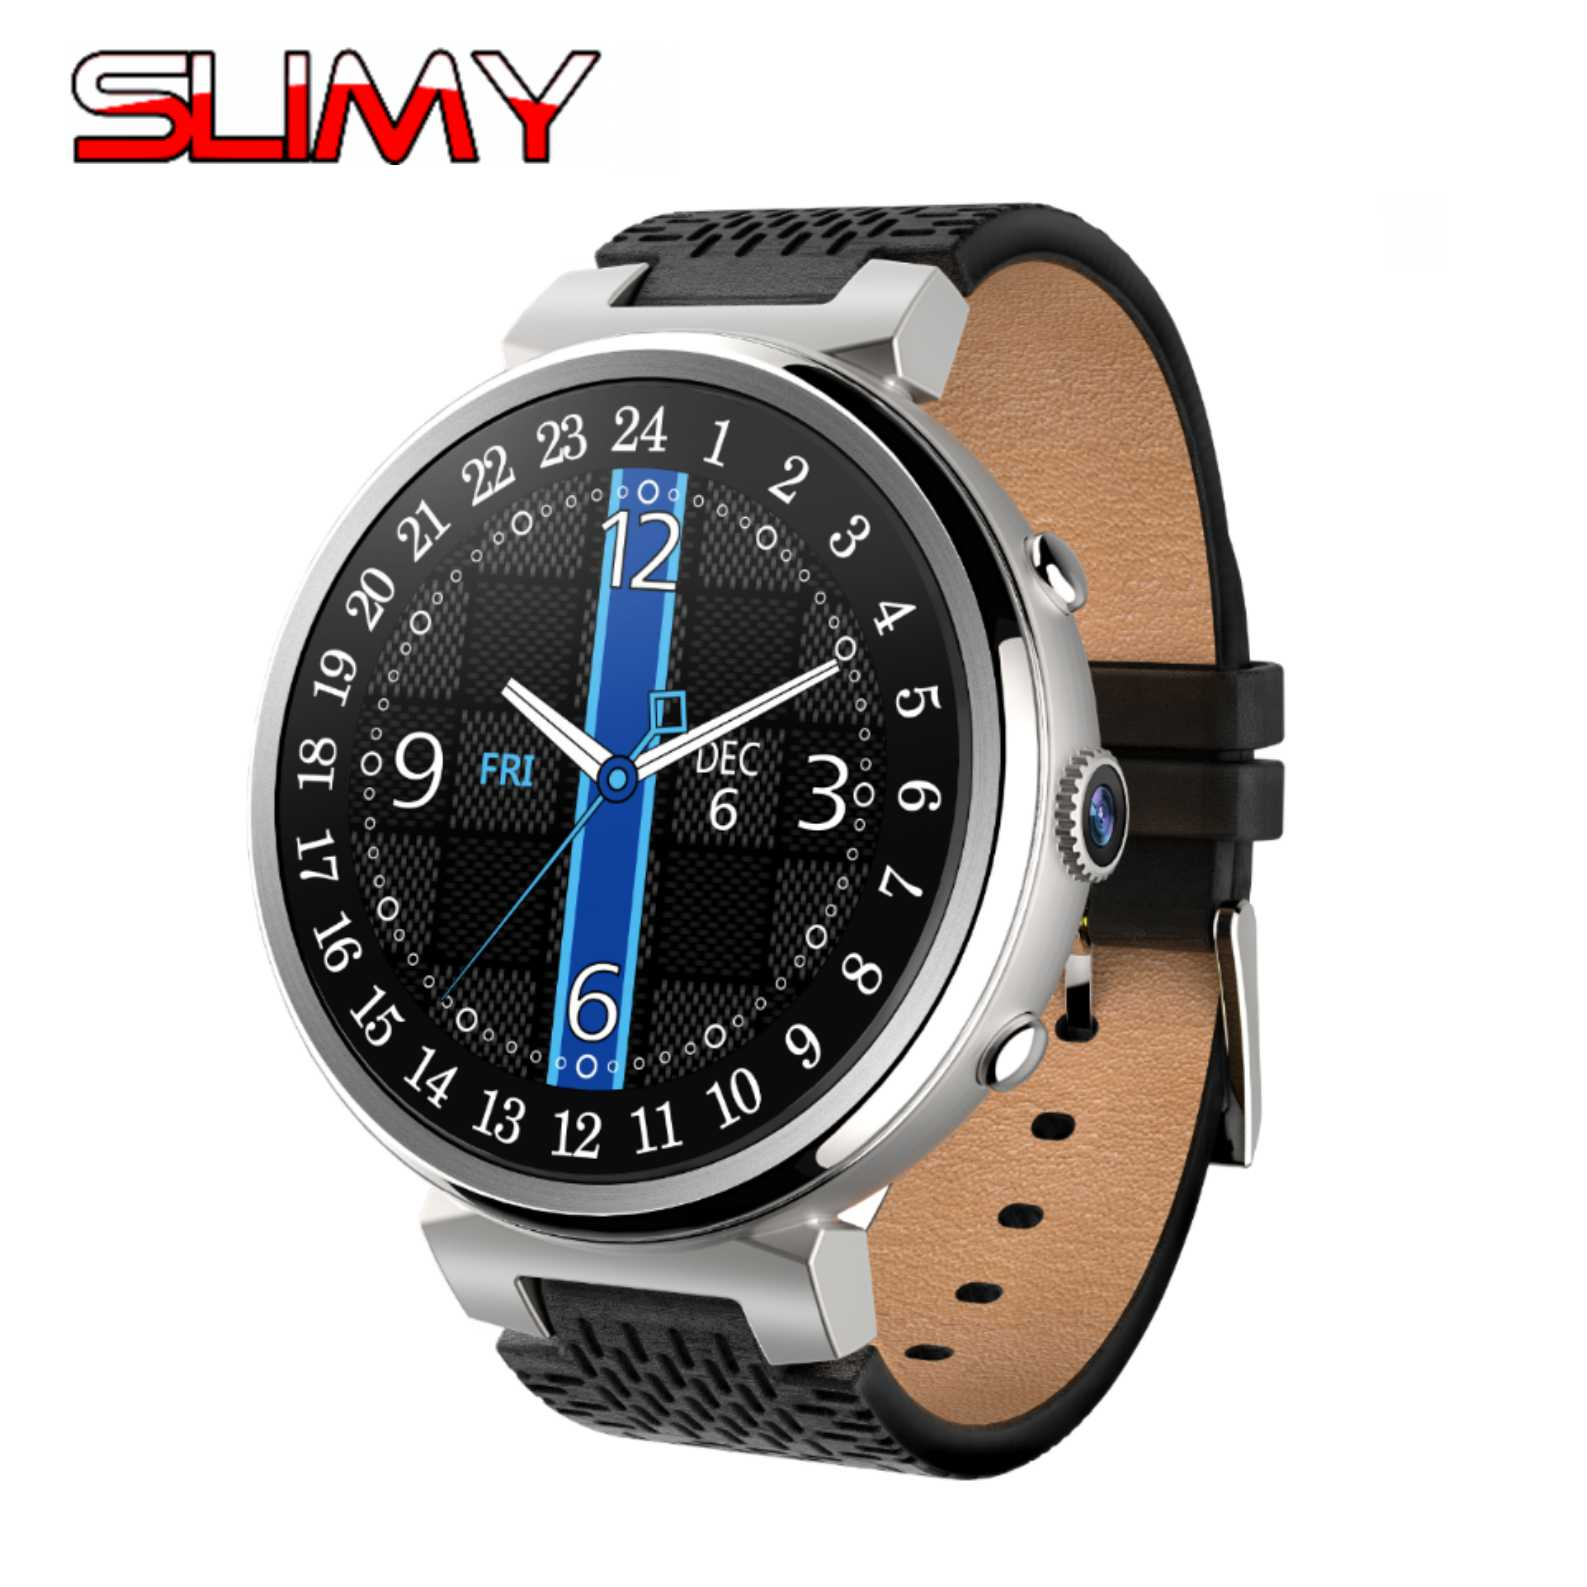 Slimy Wifi 3G Smart Watch Android 5.1 OS MTK6580 Quad Core RAM 2GB ROM 16GB Smartwatch Support GPS Google Play Store Whatsapp